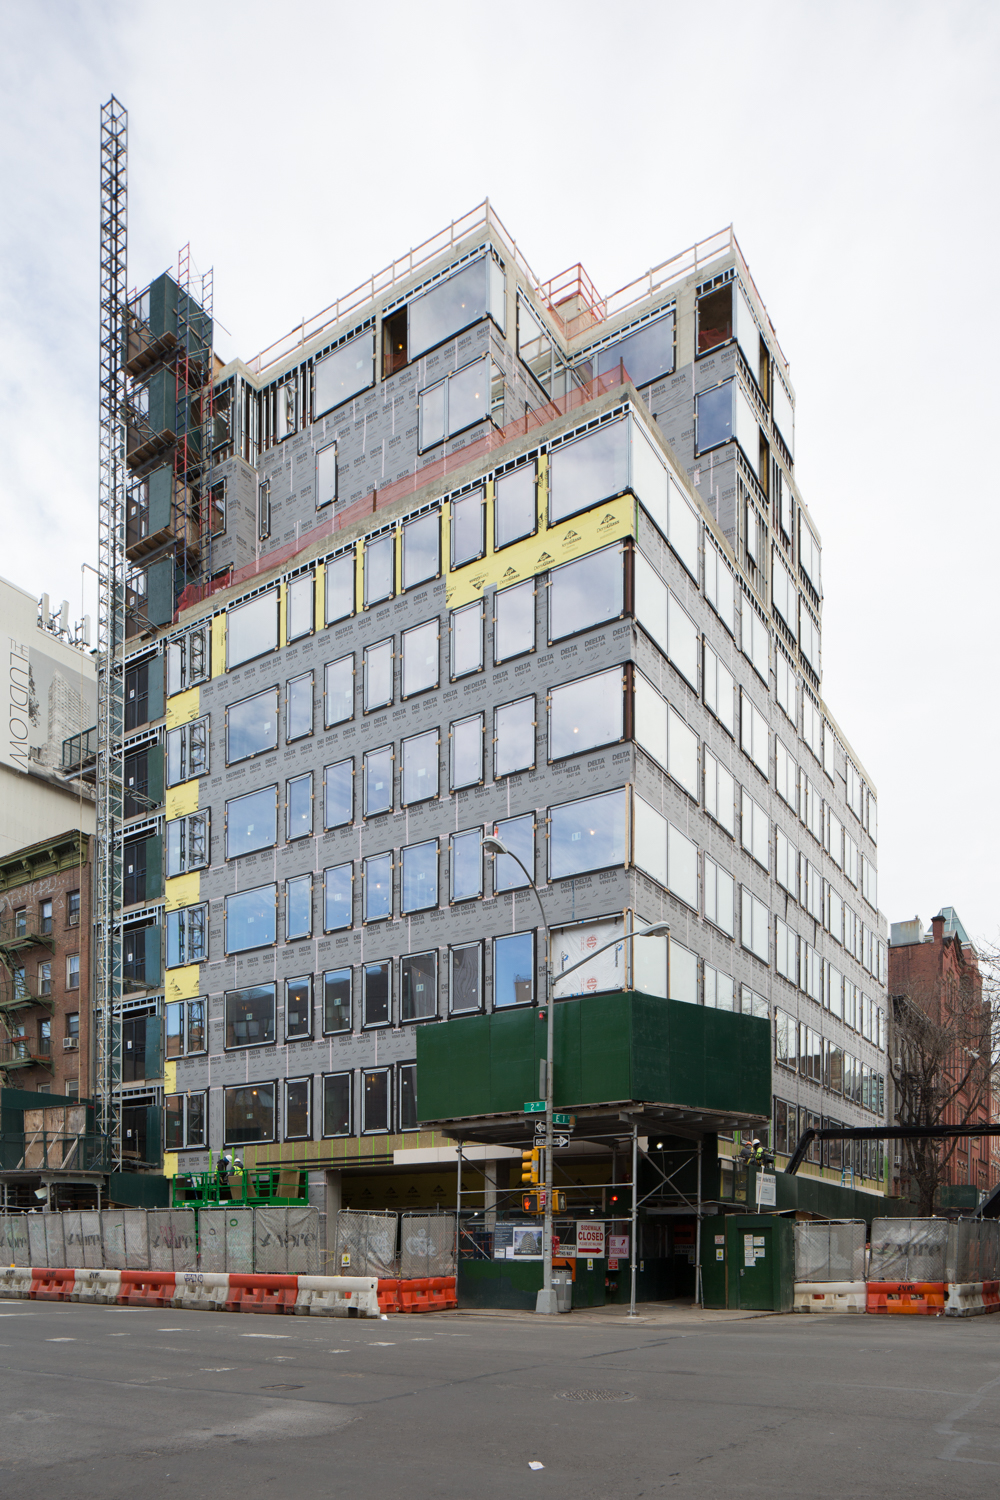 24 Second Avenue, image by Andrew Campbell Nelson